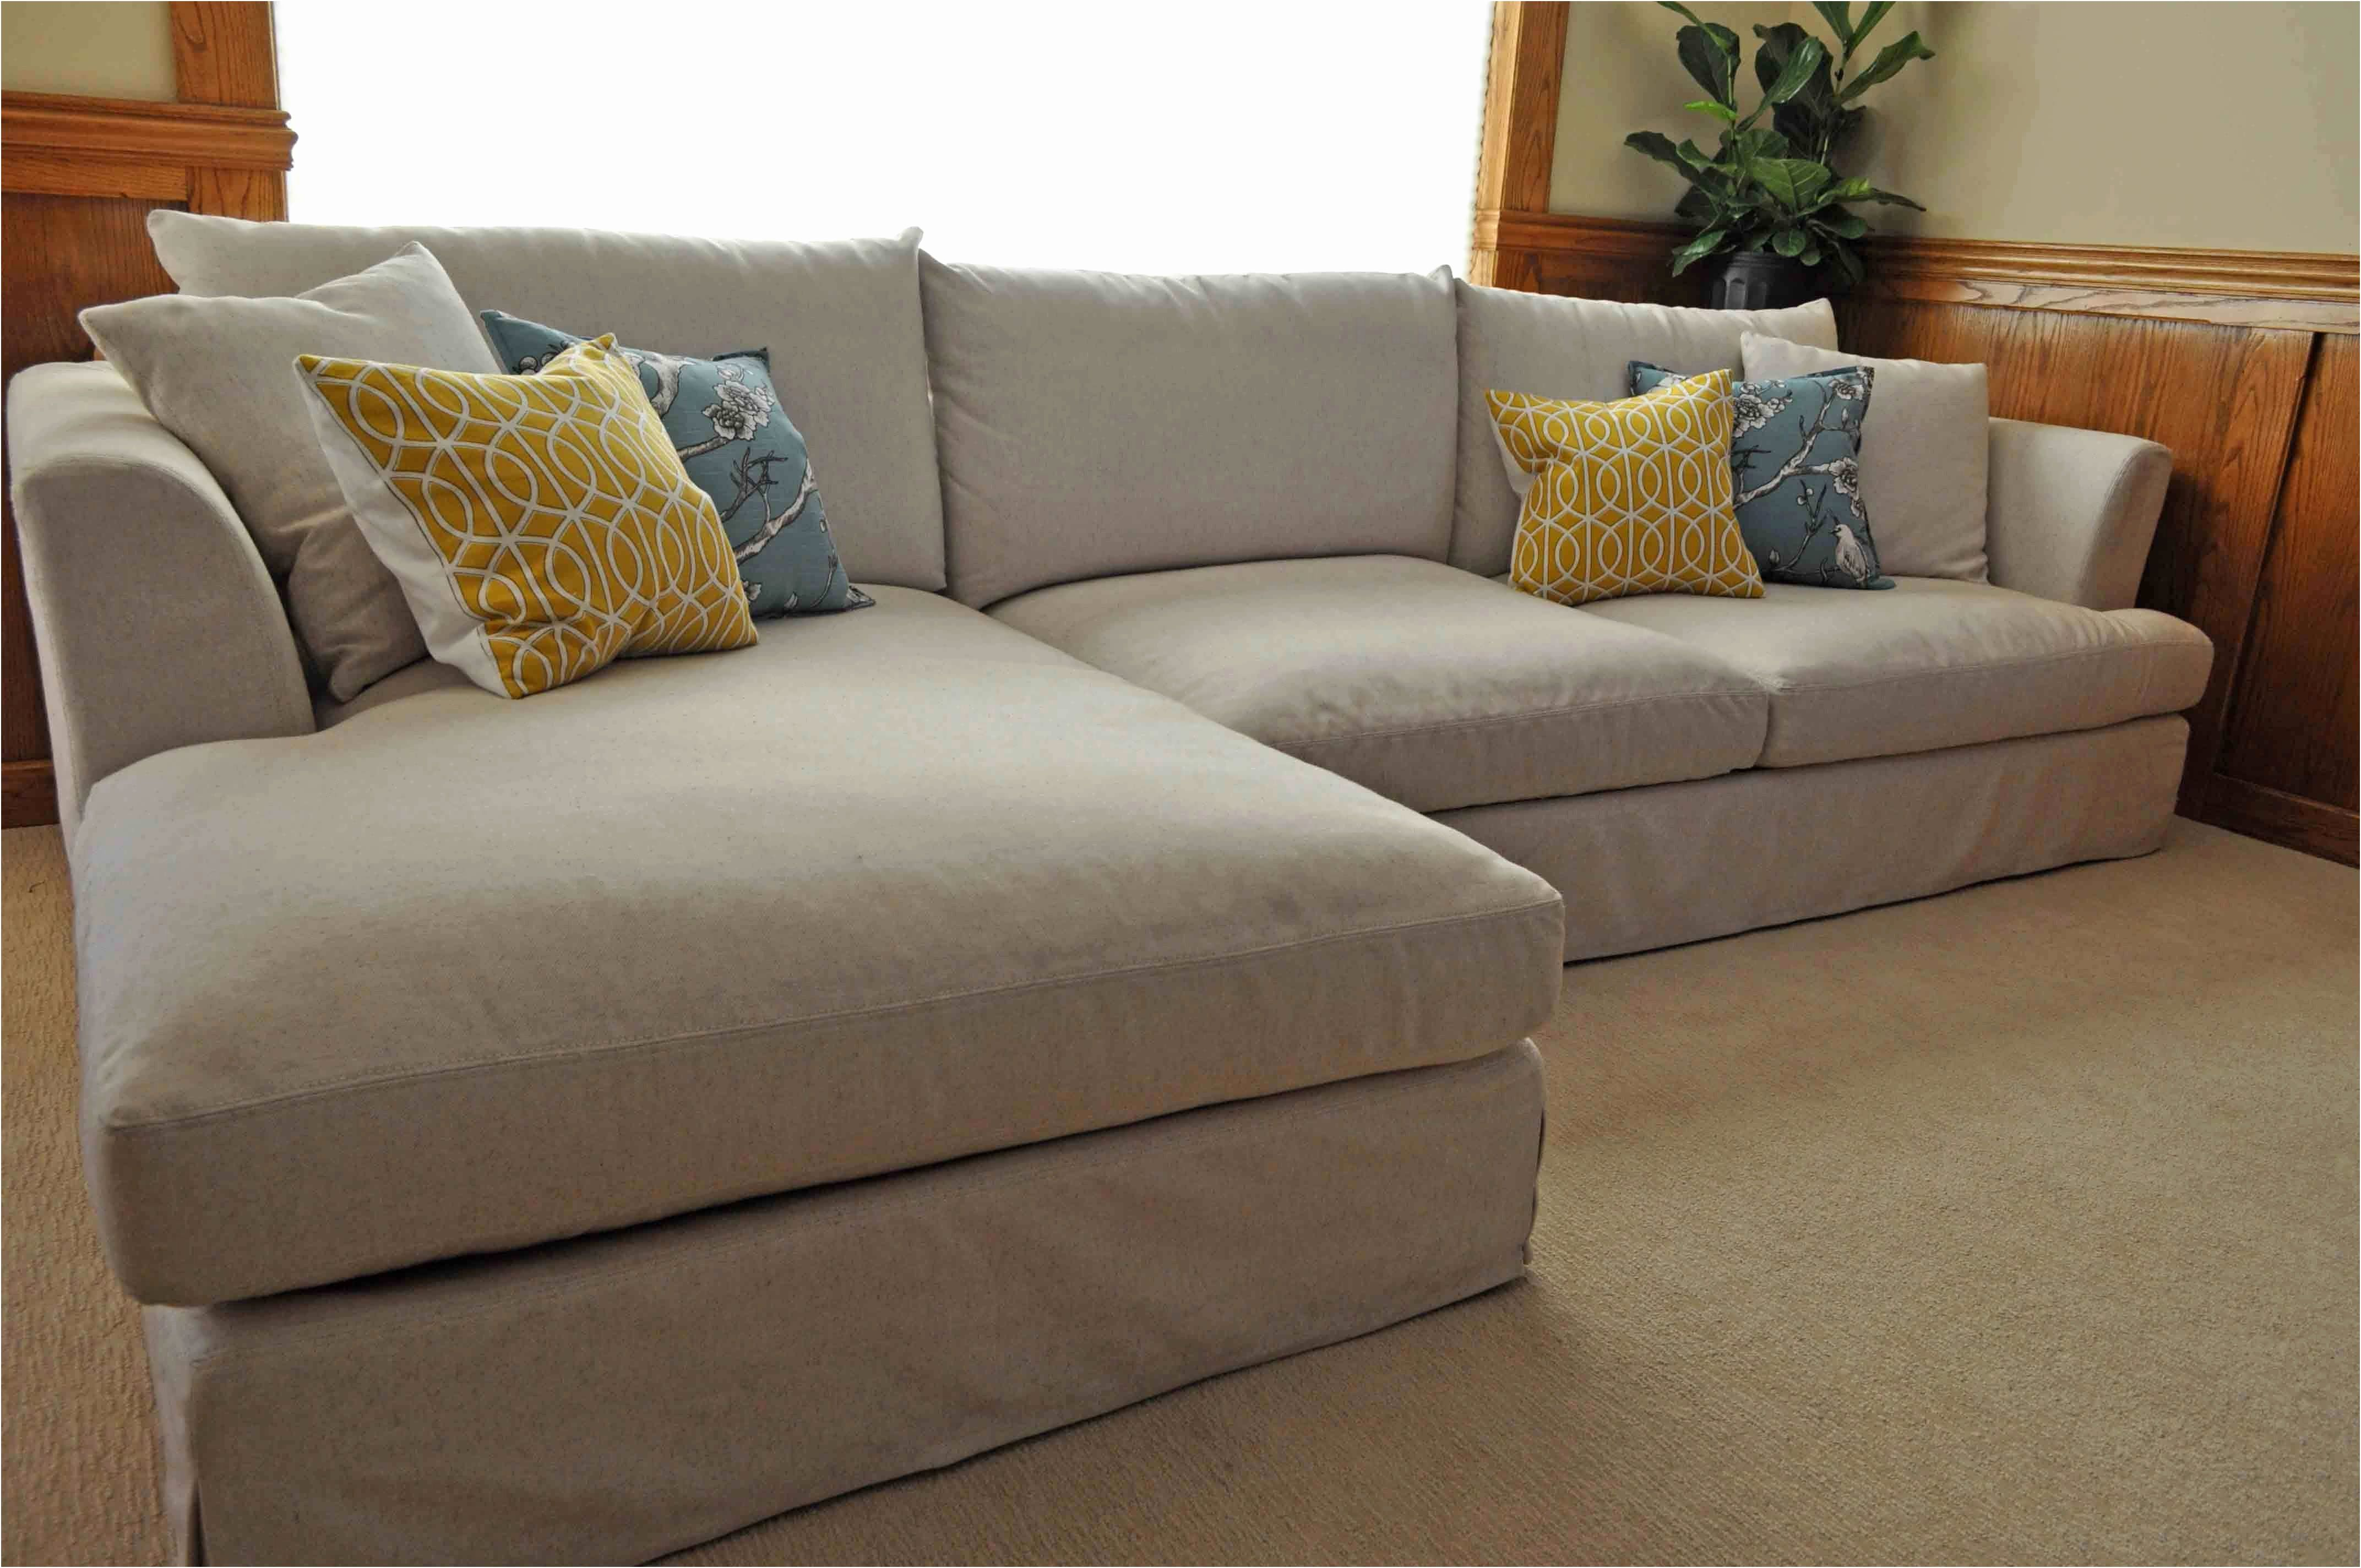 Luxury Apartment Size Sofa With Chaise Lounge Photograpy Sectional Sleeper Sofa With Comfortable Sectional Sofa Sofa Bed For Small Spaces Sectional Sofa Comfy